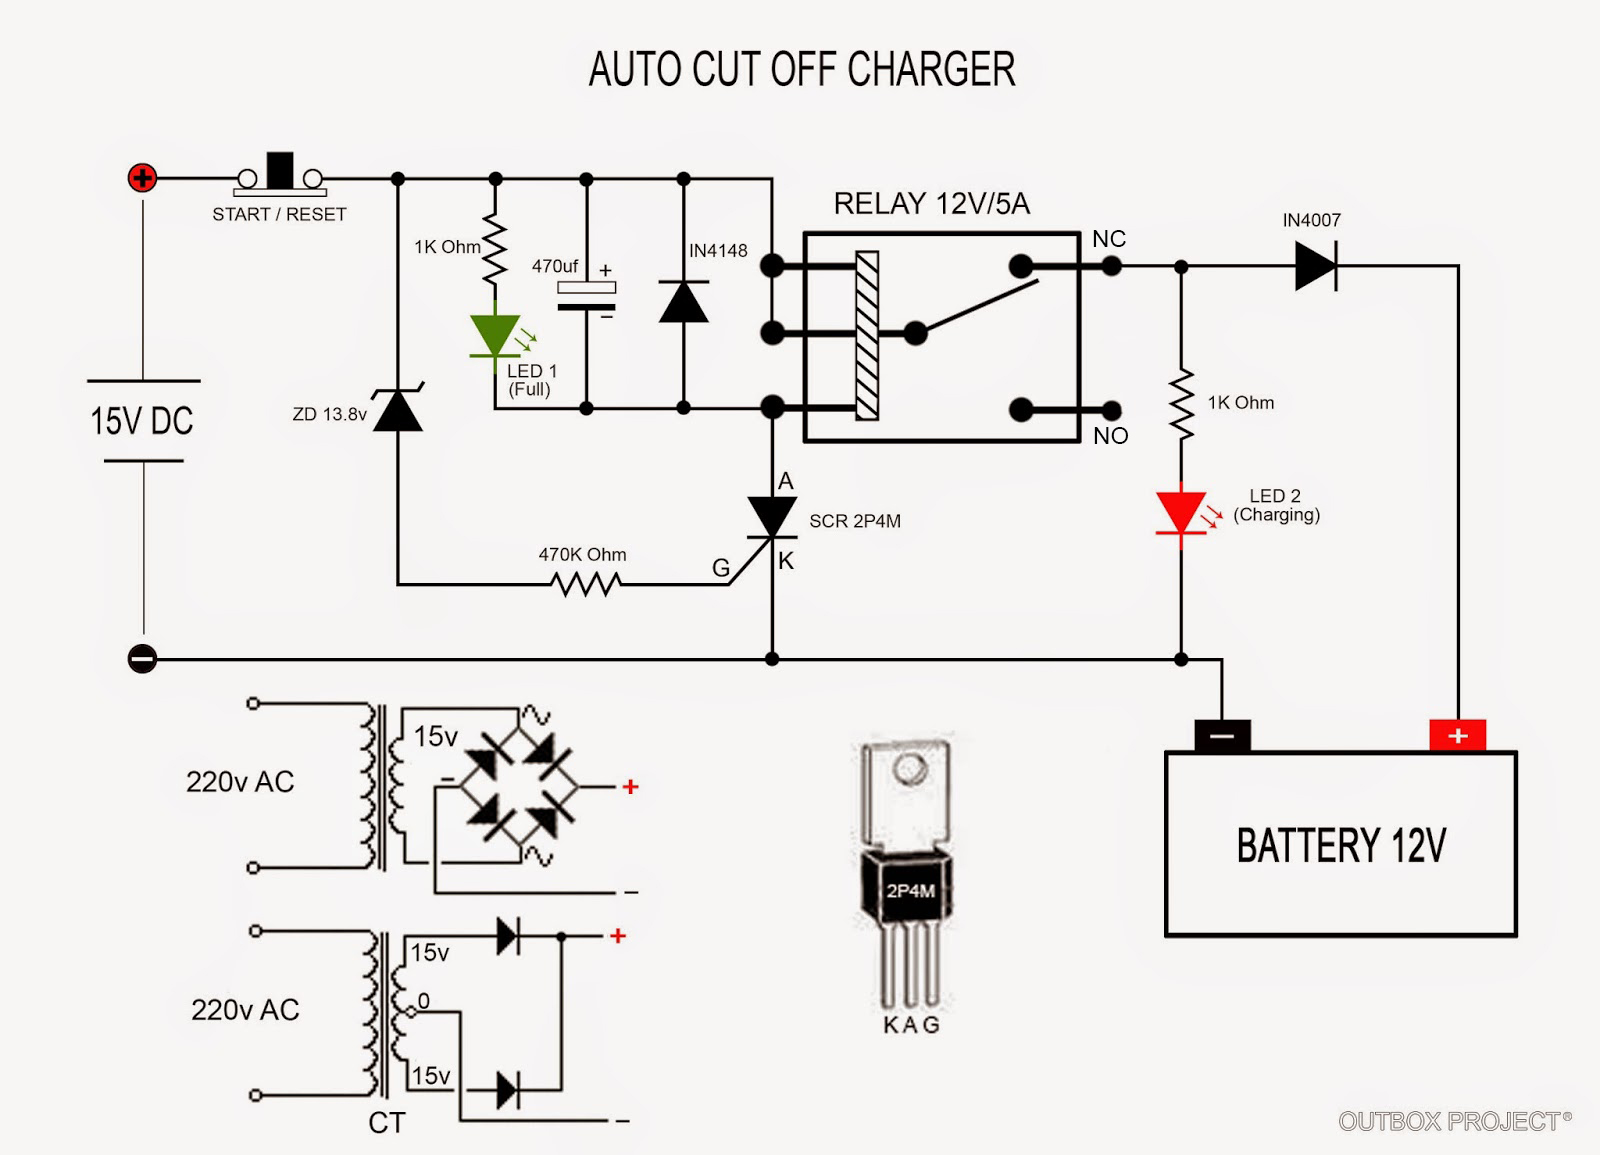 For Bayou 220 Starter Wiring Diagrams Circuit Diagram Battery Charger Using Scr 24h Schemes